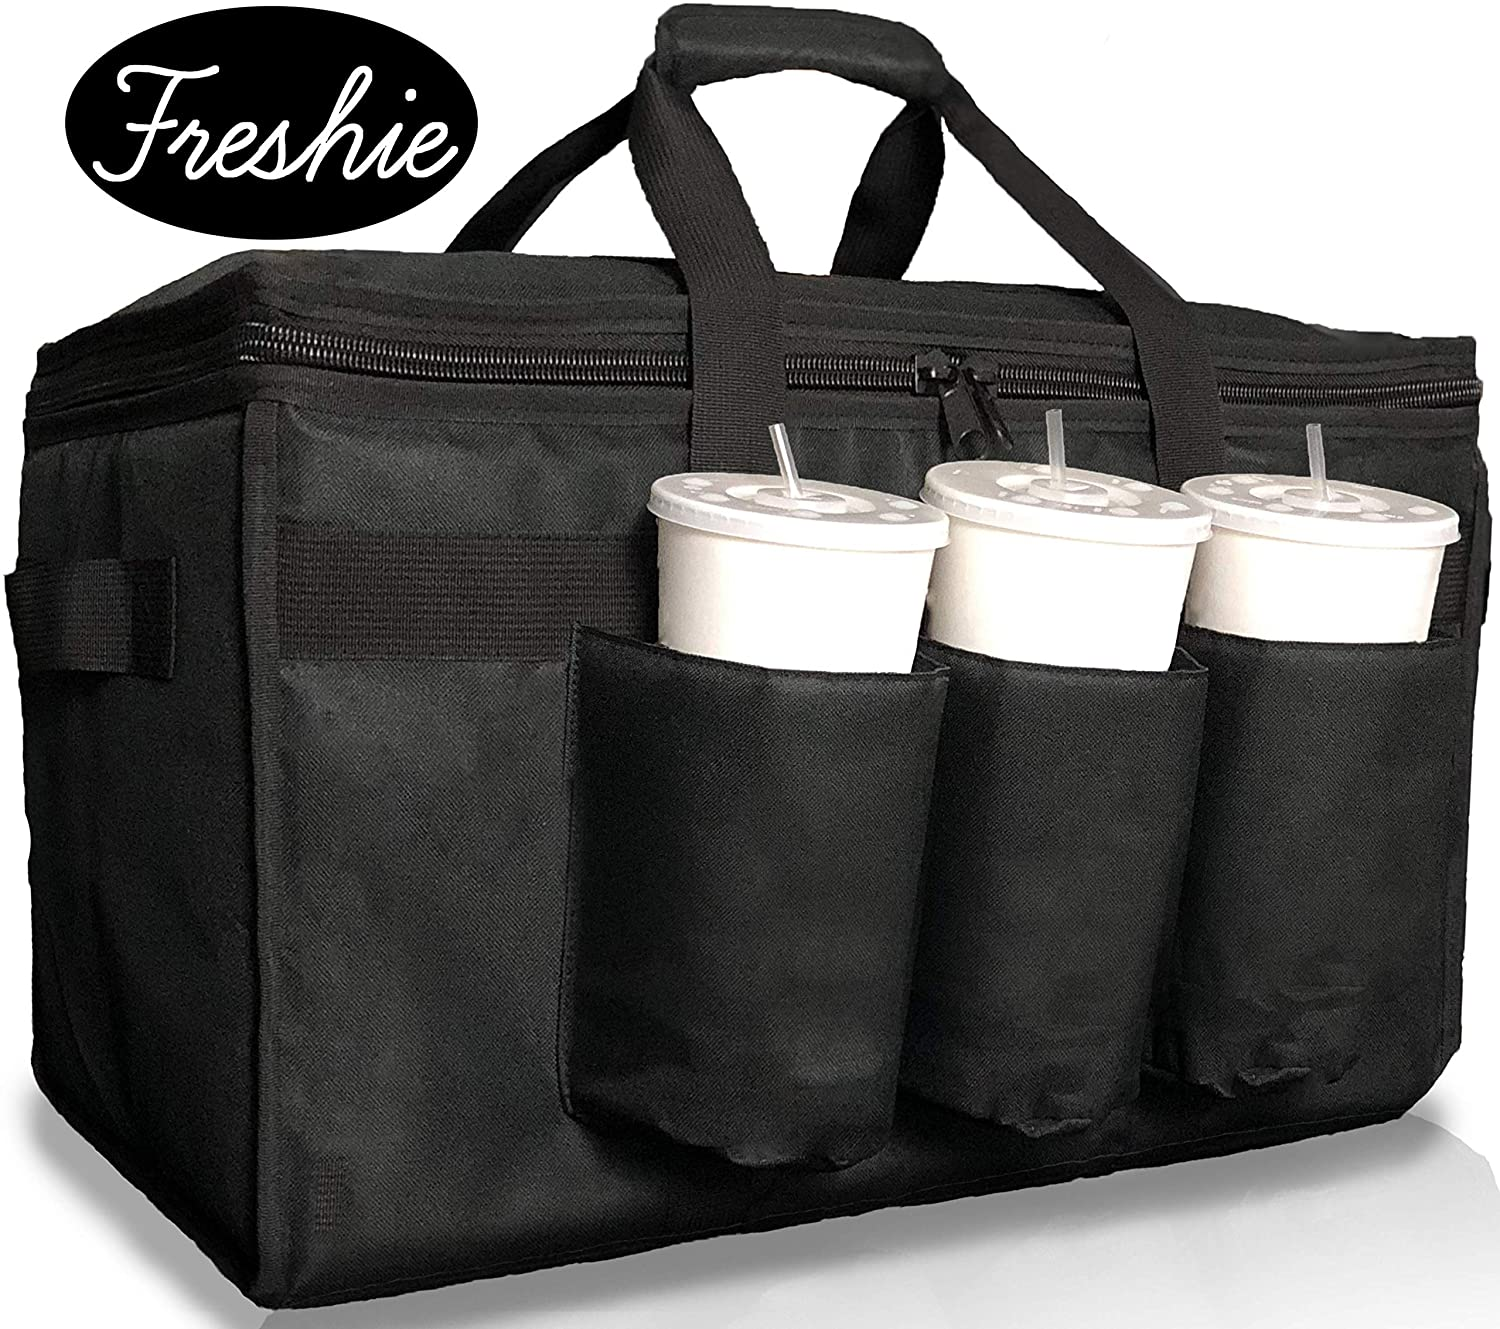 Insulated Food Delivery Bag with Cup Holders/Drink Carriers Premium XXL, Great for Beverages, Grocery, Catering, DoorDash, Uber Eats, PostMates, Grubhub, Commercial Quality Hot and Cold